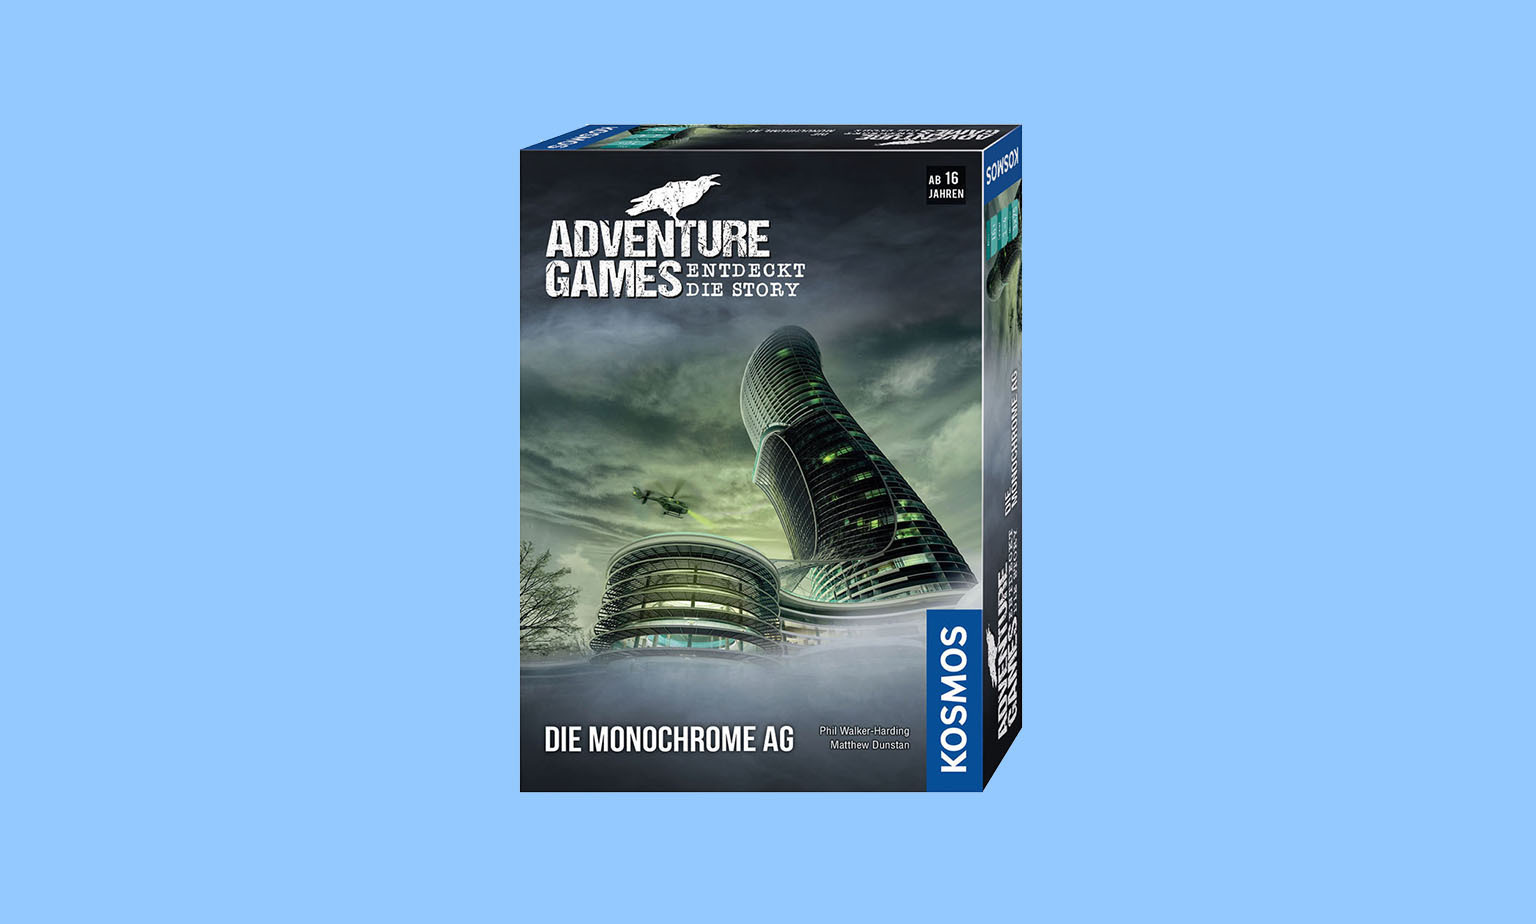 Die Monochrome AG - KOSMOS Adventure Games